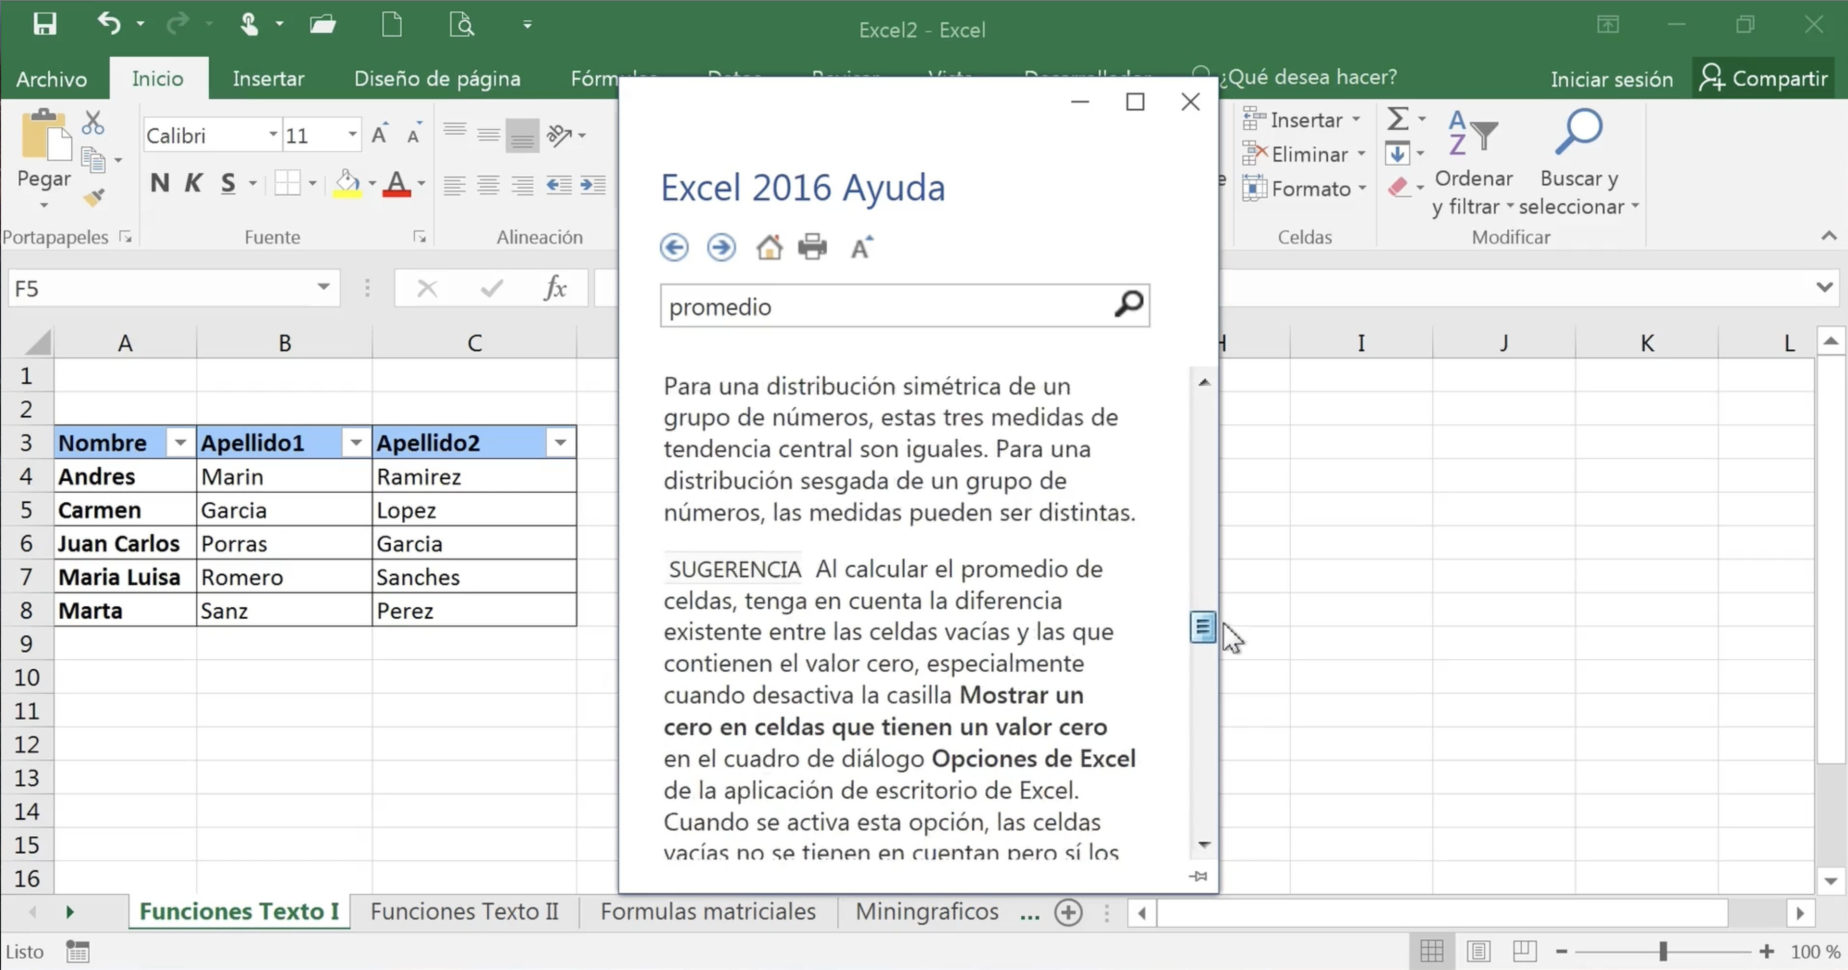 Microsoft Excel Spreadsheet Software Excel Free Trial – Tablas And Microsoft Excel Spreadsheet Software